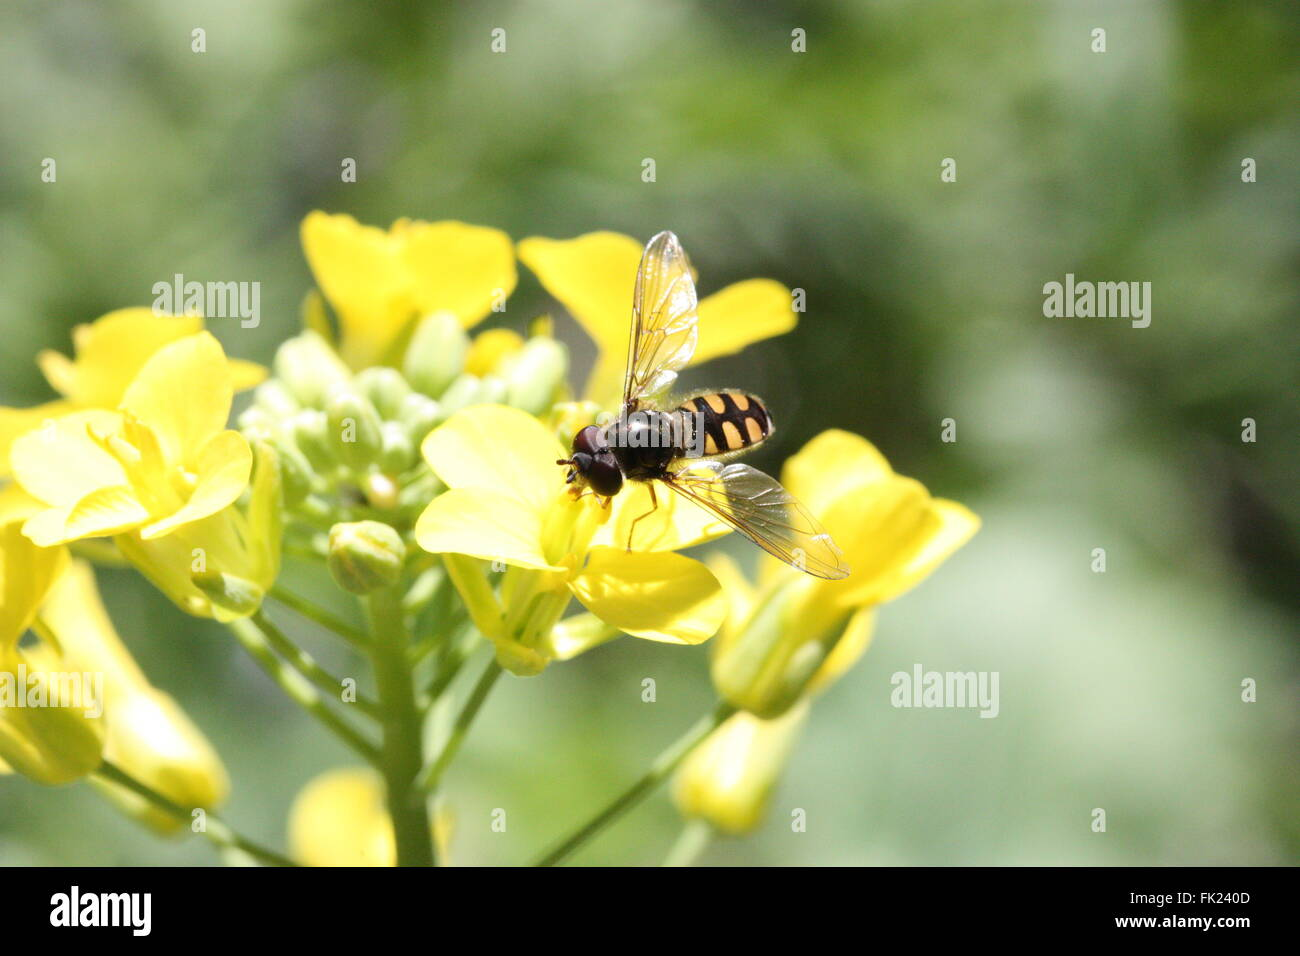 Hoverfly (a beneficial insect) on a brassica flower in a garden. - Stock Image